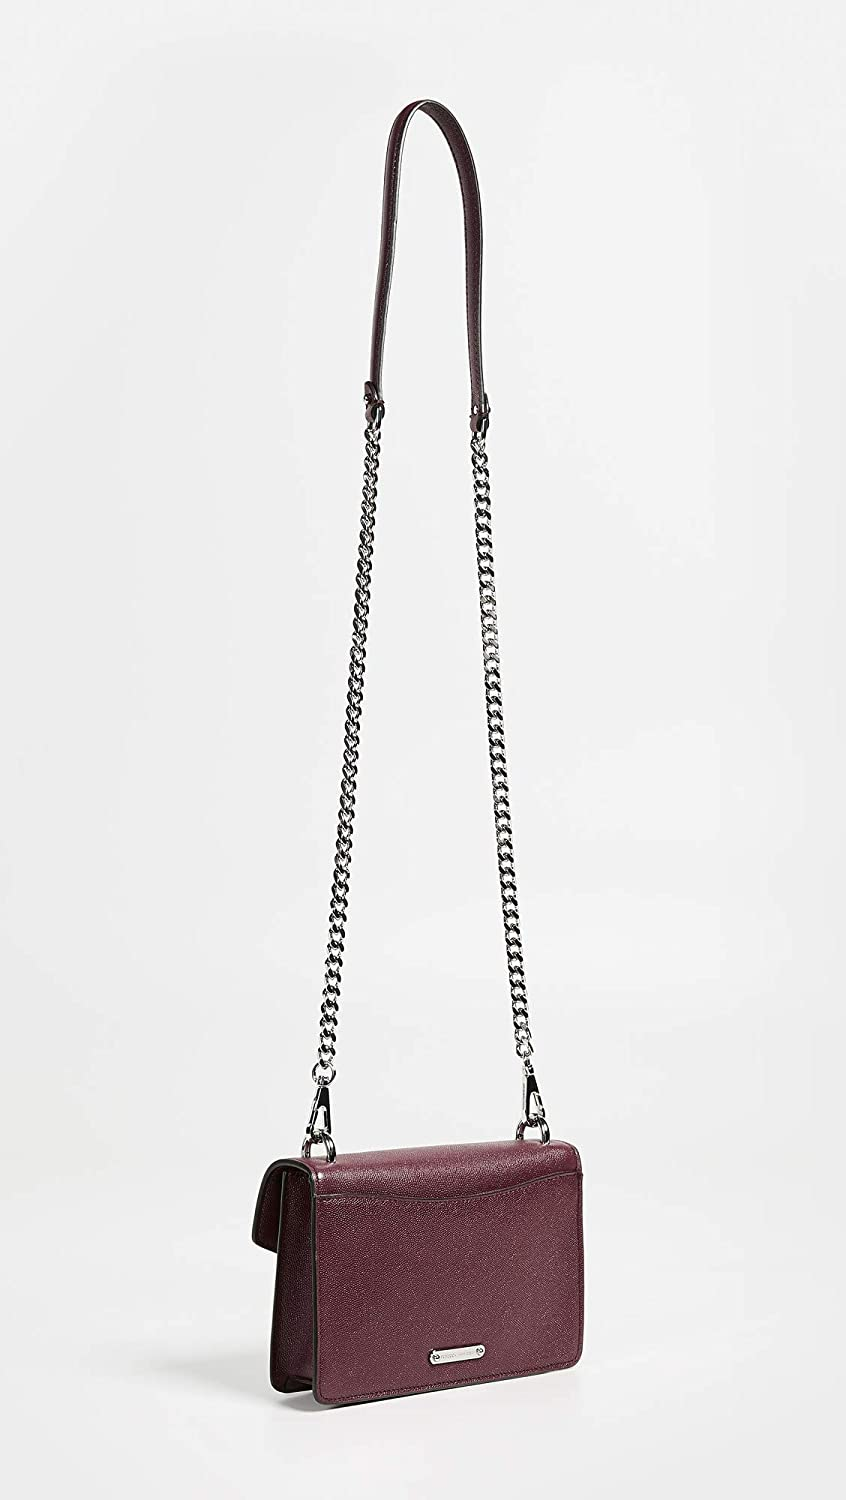 Rebecca Minkoff Women's Jean Crossbody Leather Cross Body Bag Bordeaux